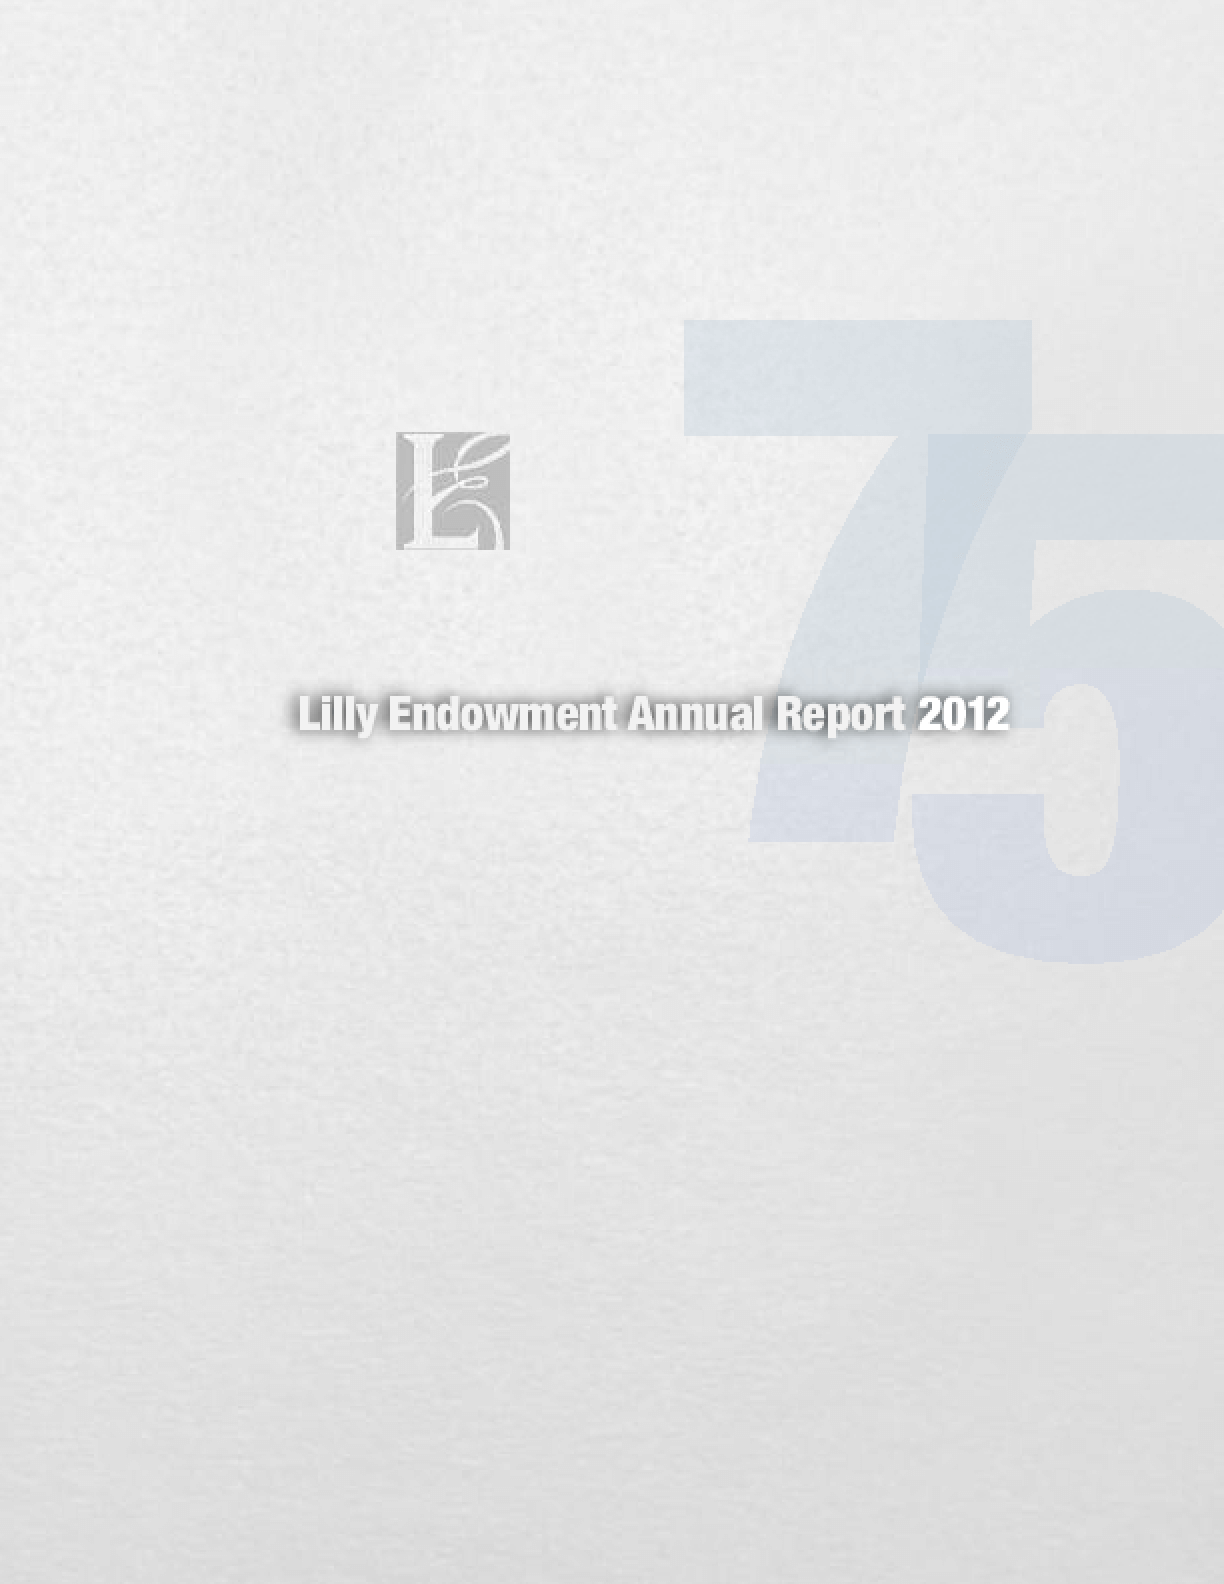 Lilly Endowment 2012 Annual Report